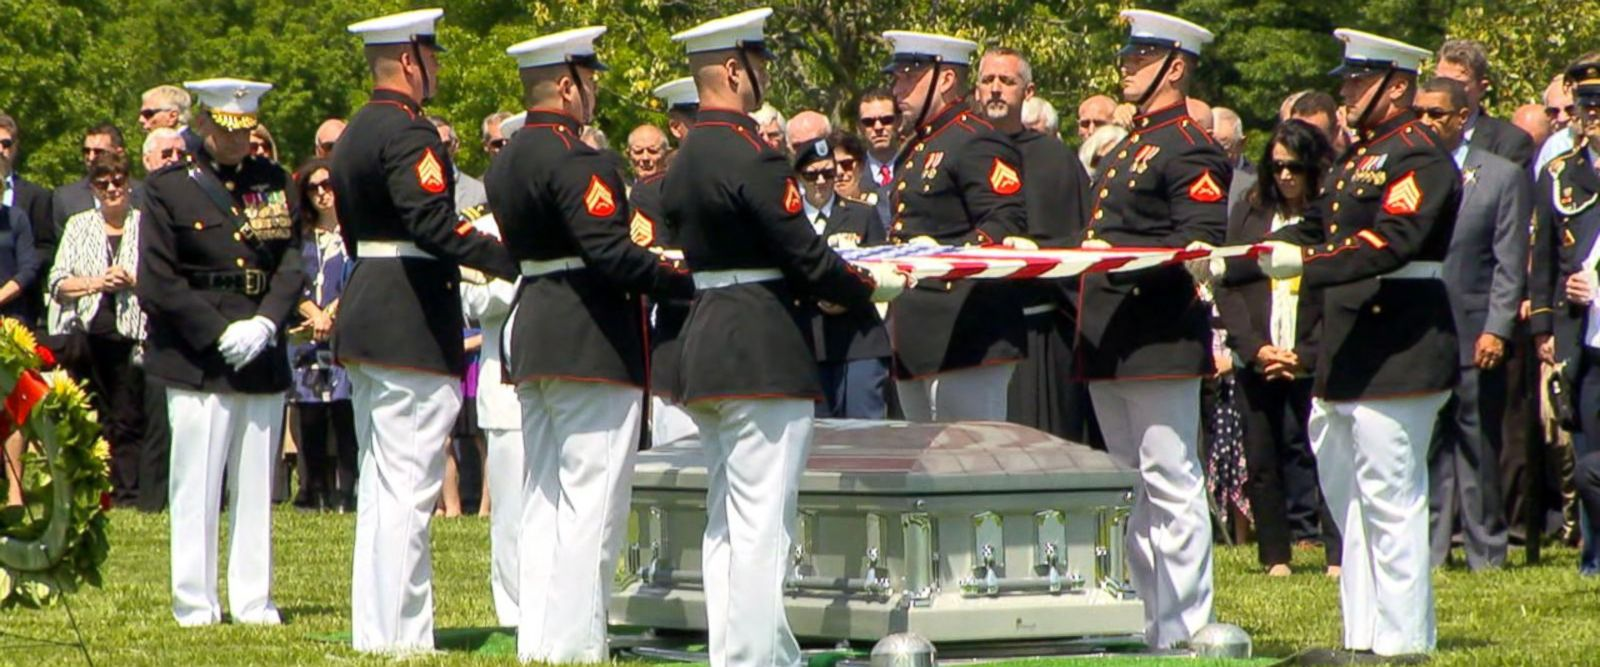 VIDEO: Missing Marine laid to rest nearly 50 years after plane shot down in Vietnam War